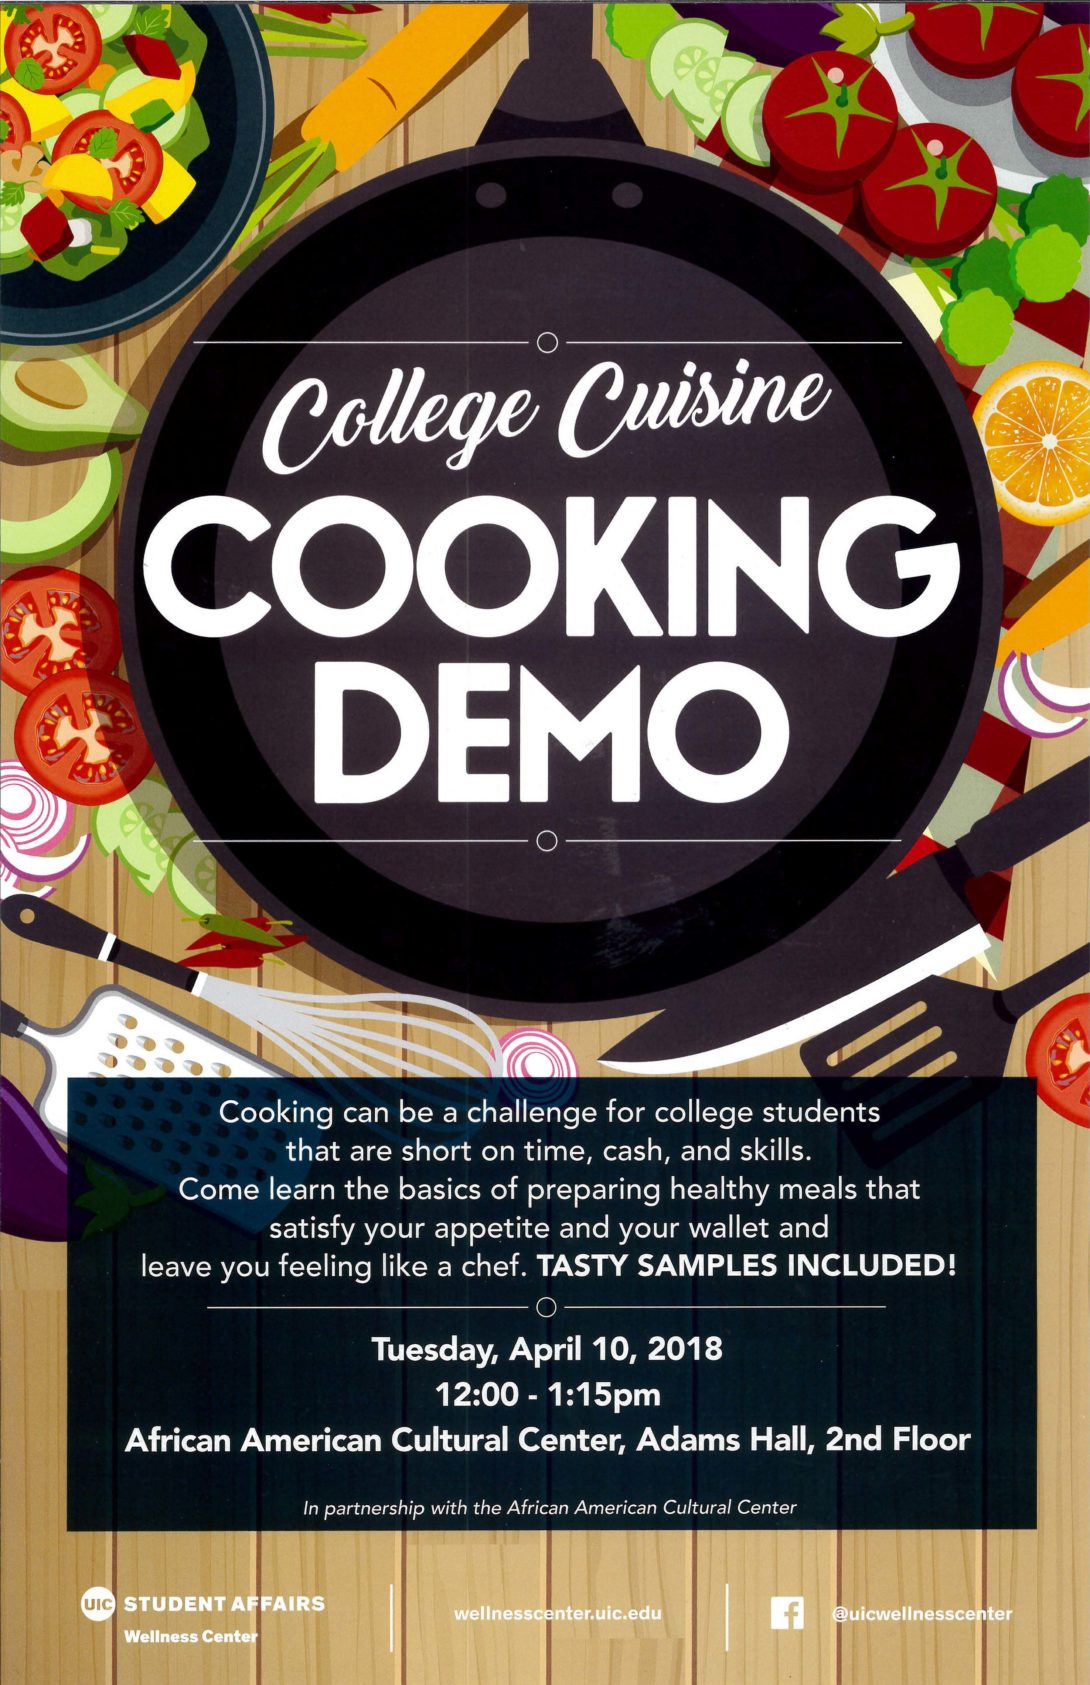 College Cuisine Cooking Demo